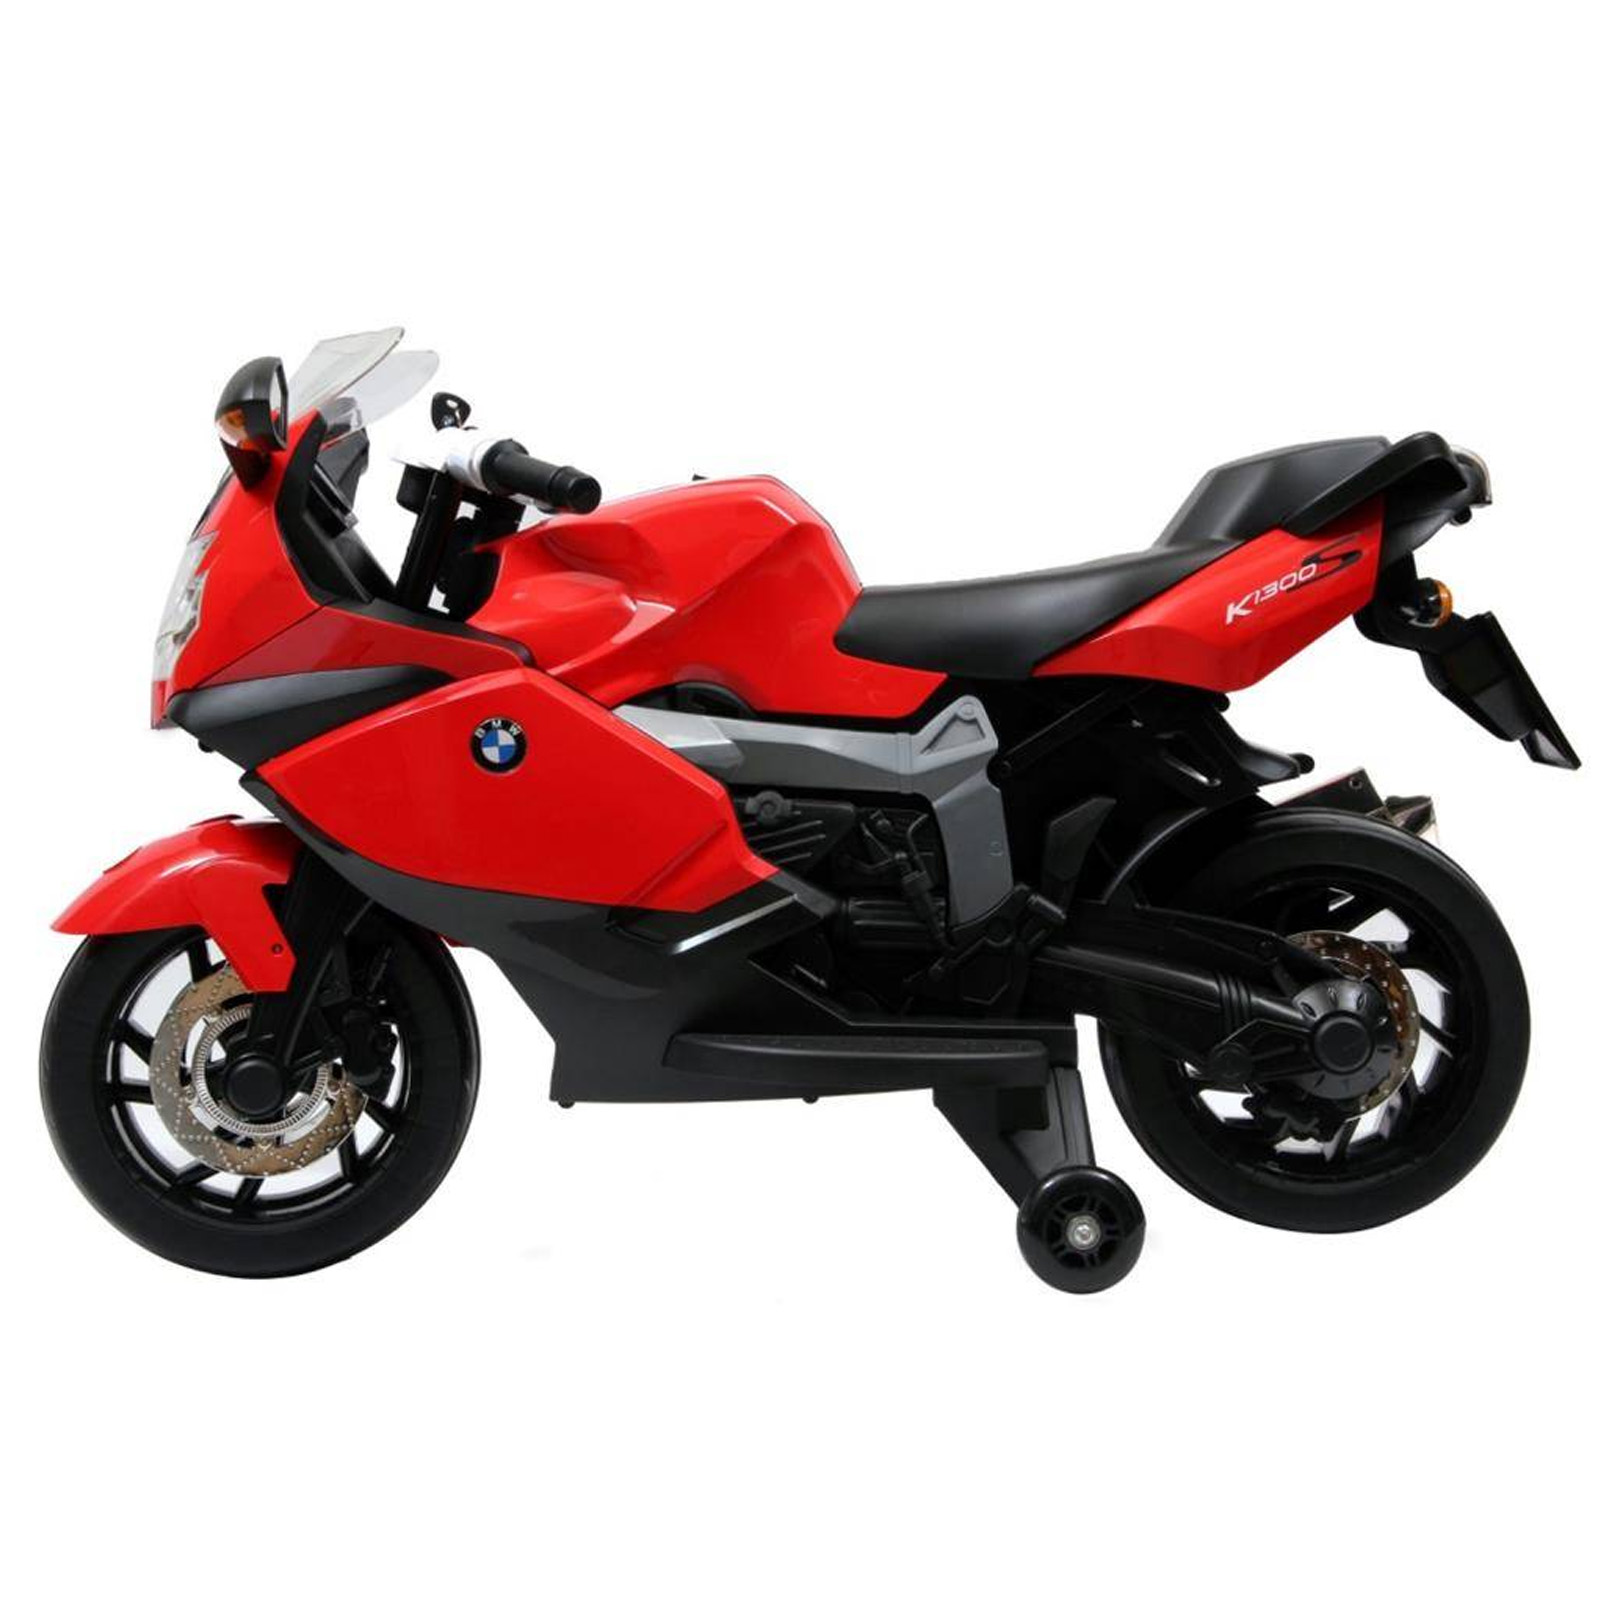 Licensed BMW Motorcycle 12V Kids Battery Powered Ride On Car Fun Toy - Red